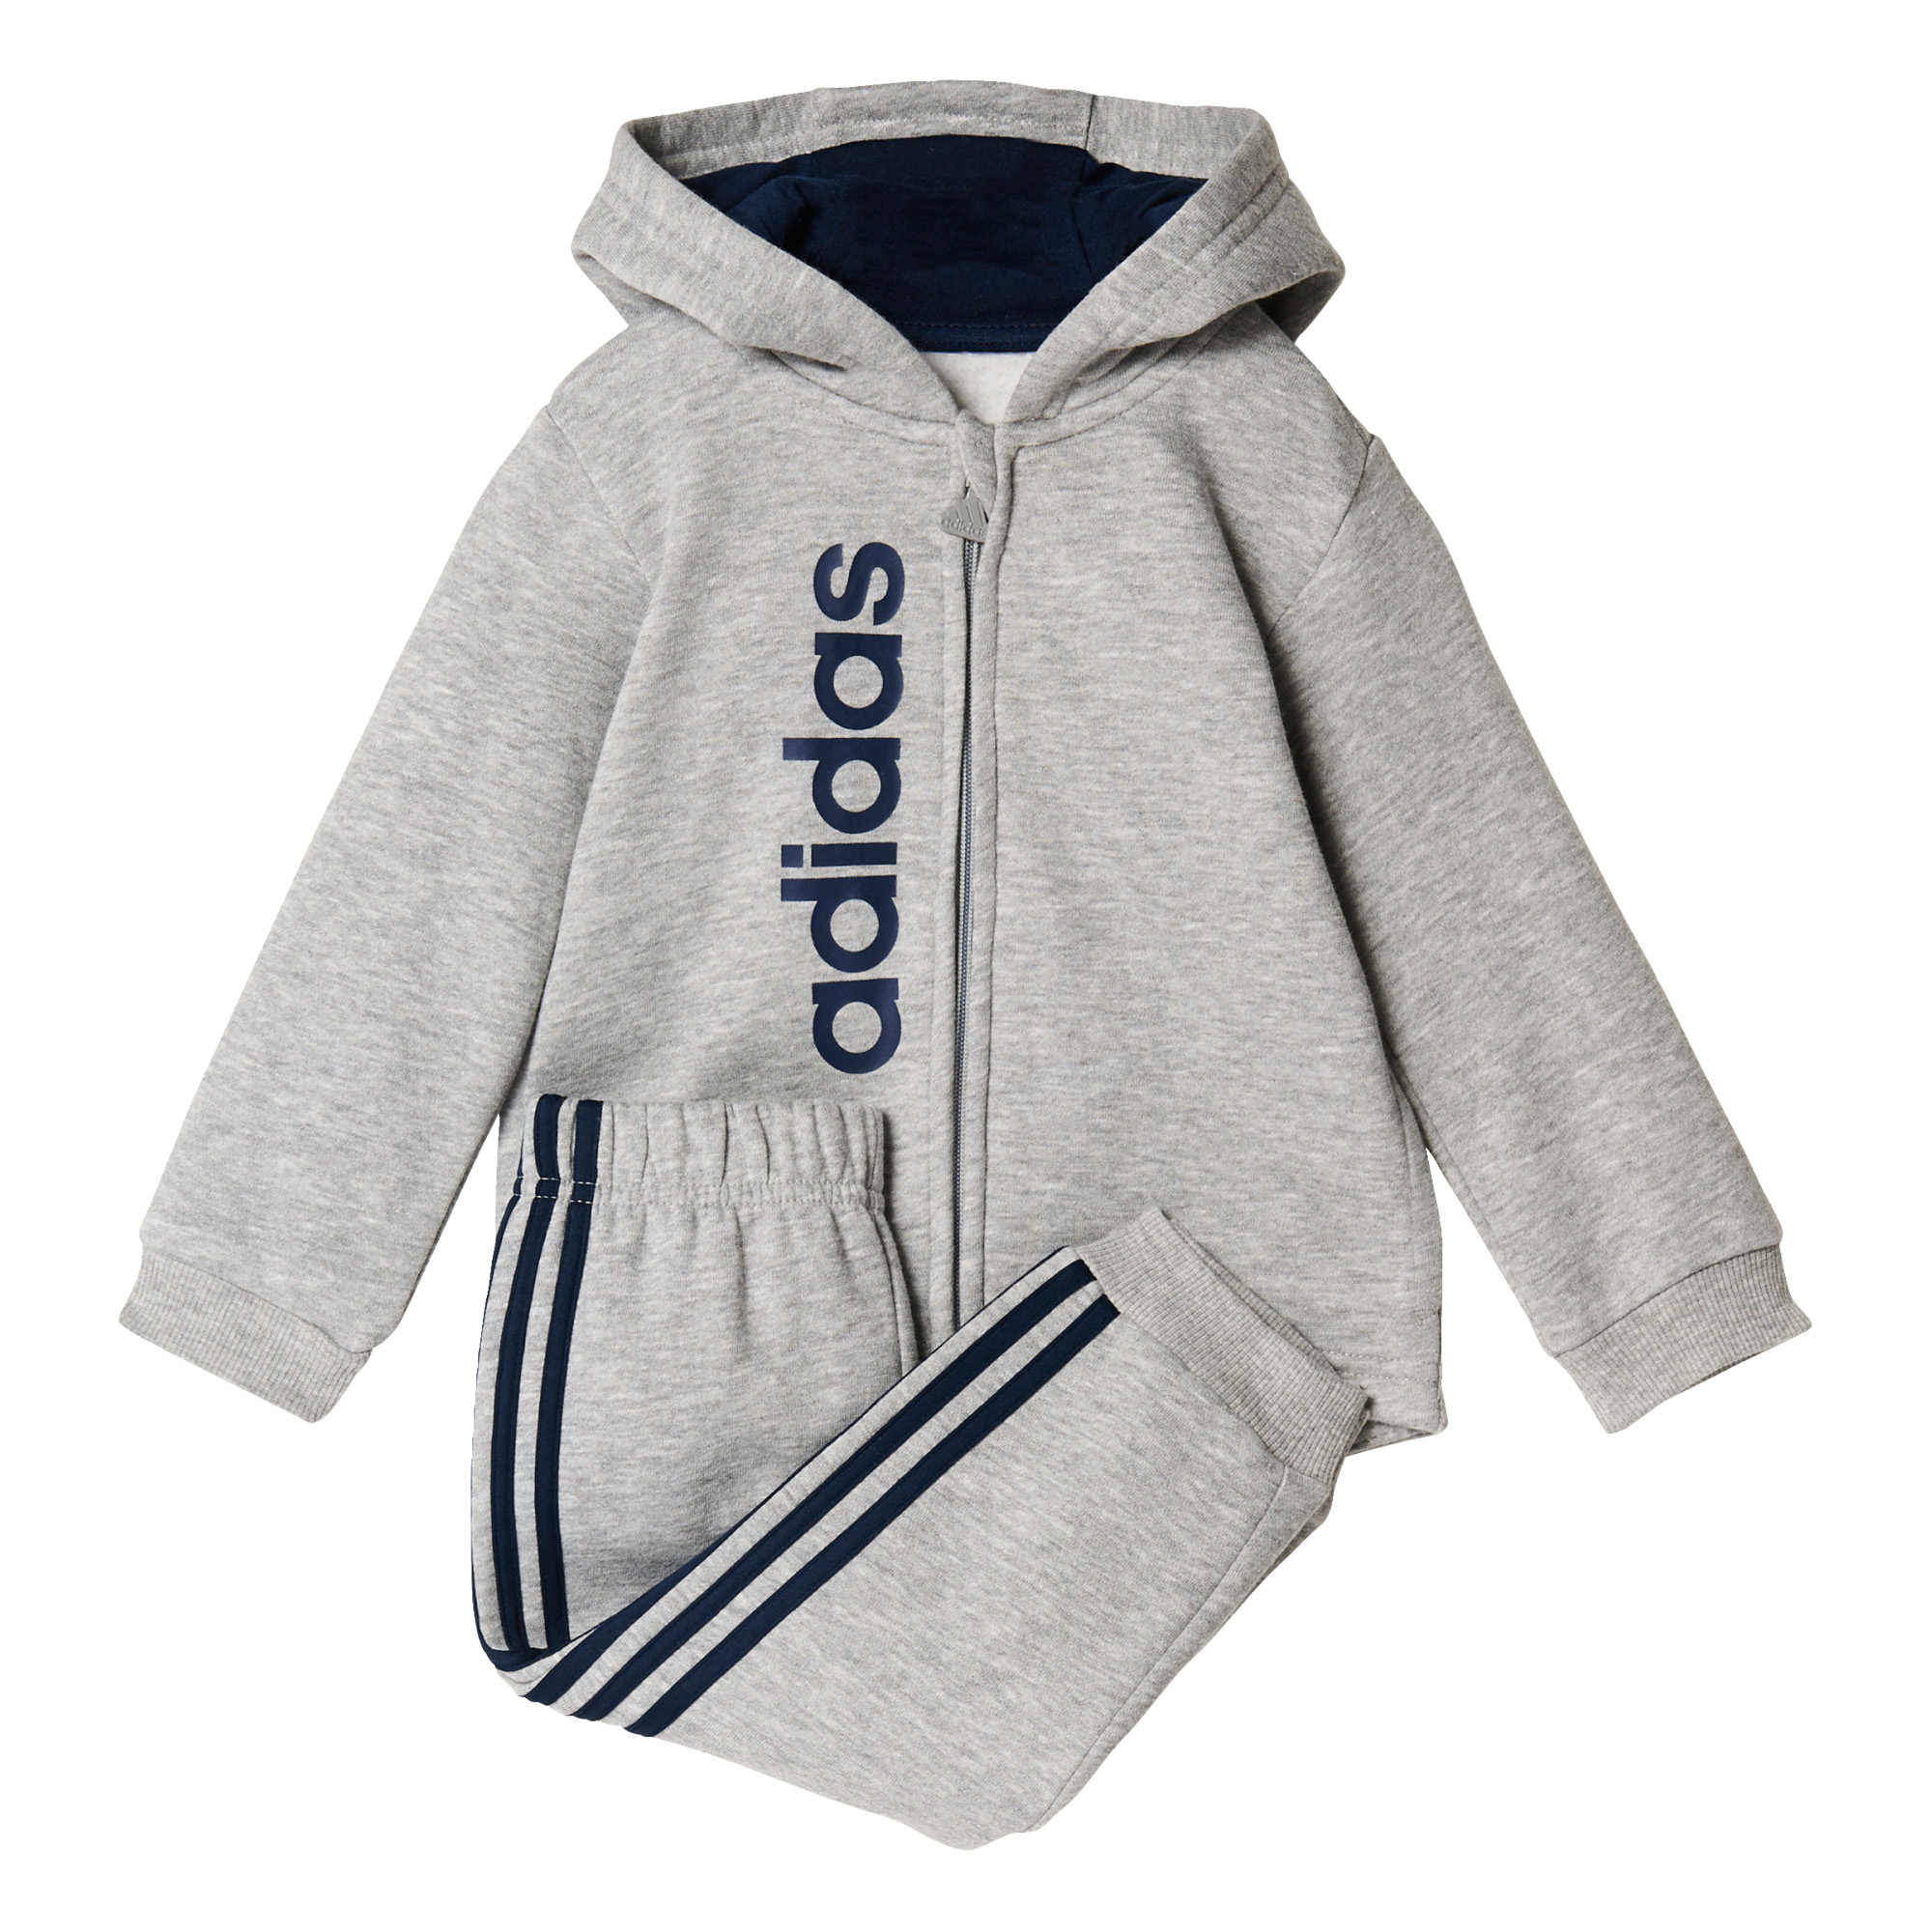 aa754163f Details about adidas Sports Fullzip Infant Toddler Boys Kids Jogger  Tracksuit Set Grey/Navy